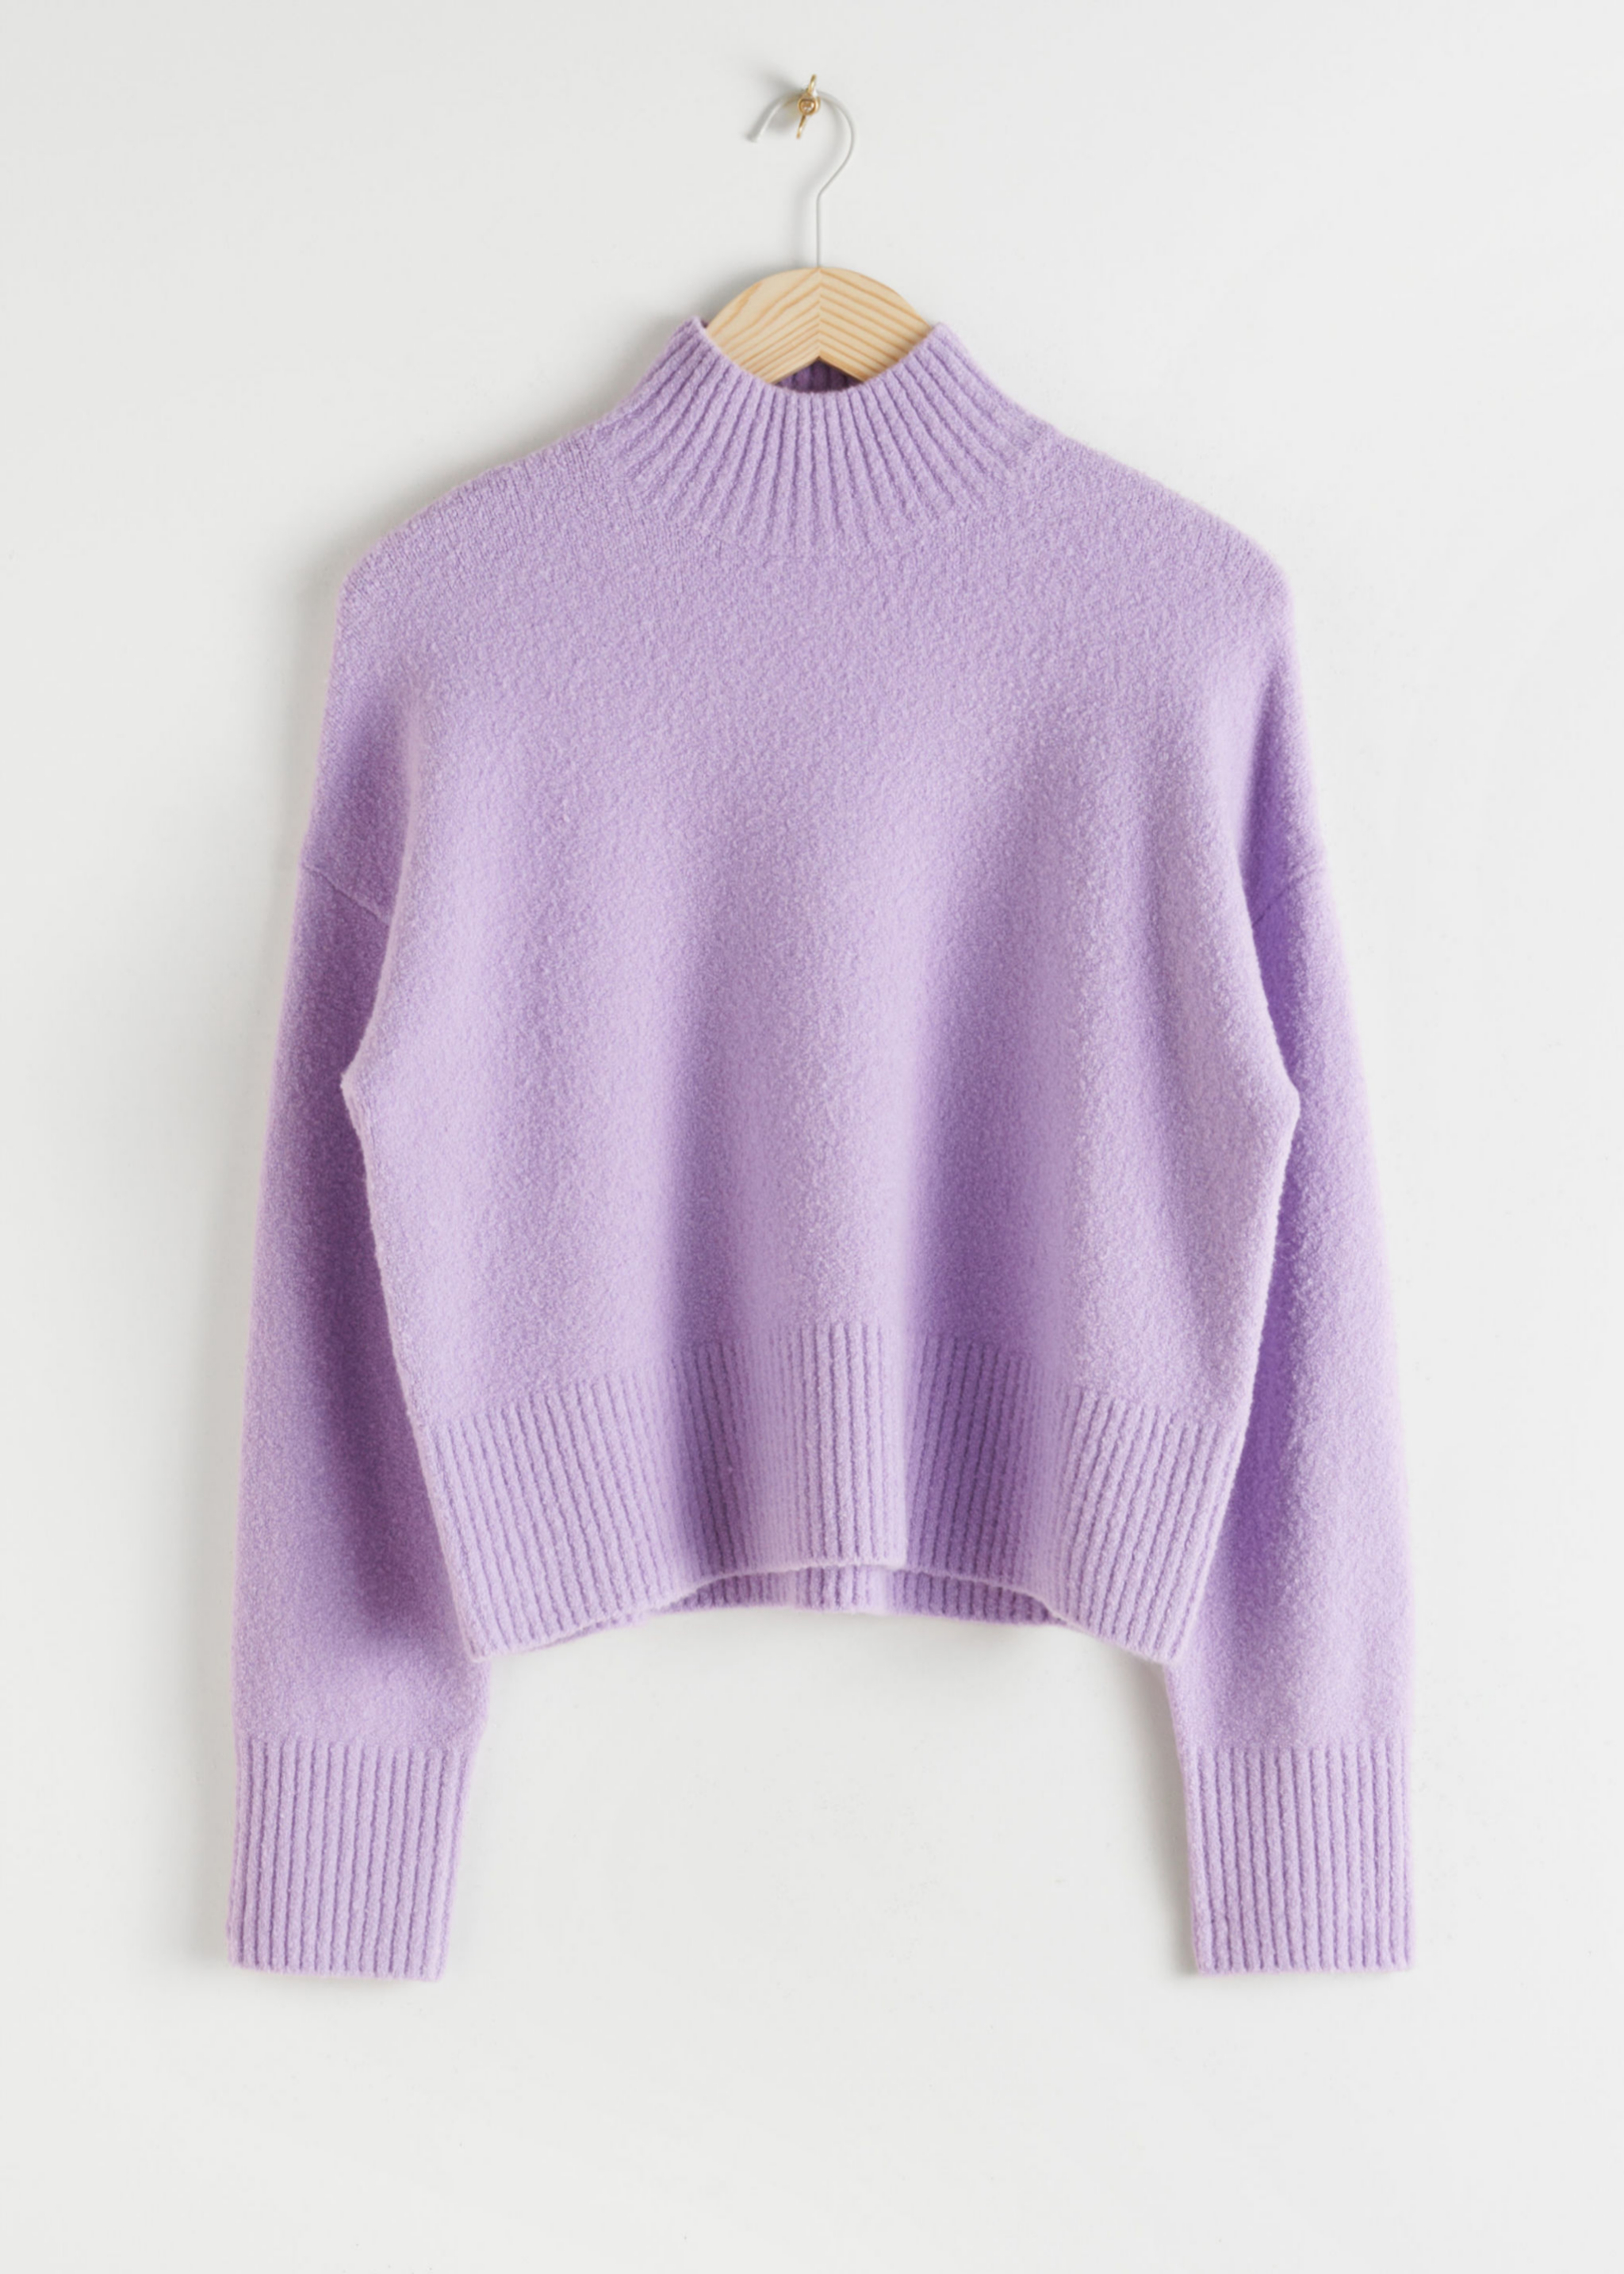 Jersey de mohair en color violeta de & Other Stories (39¤)